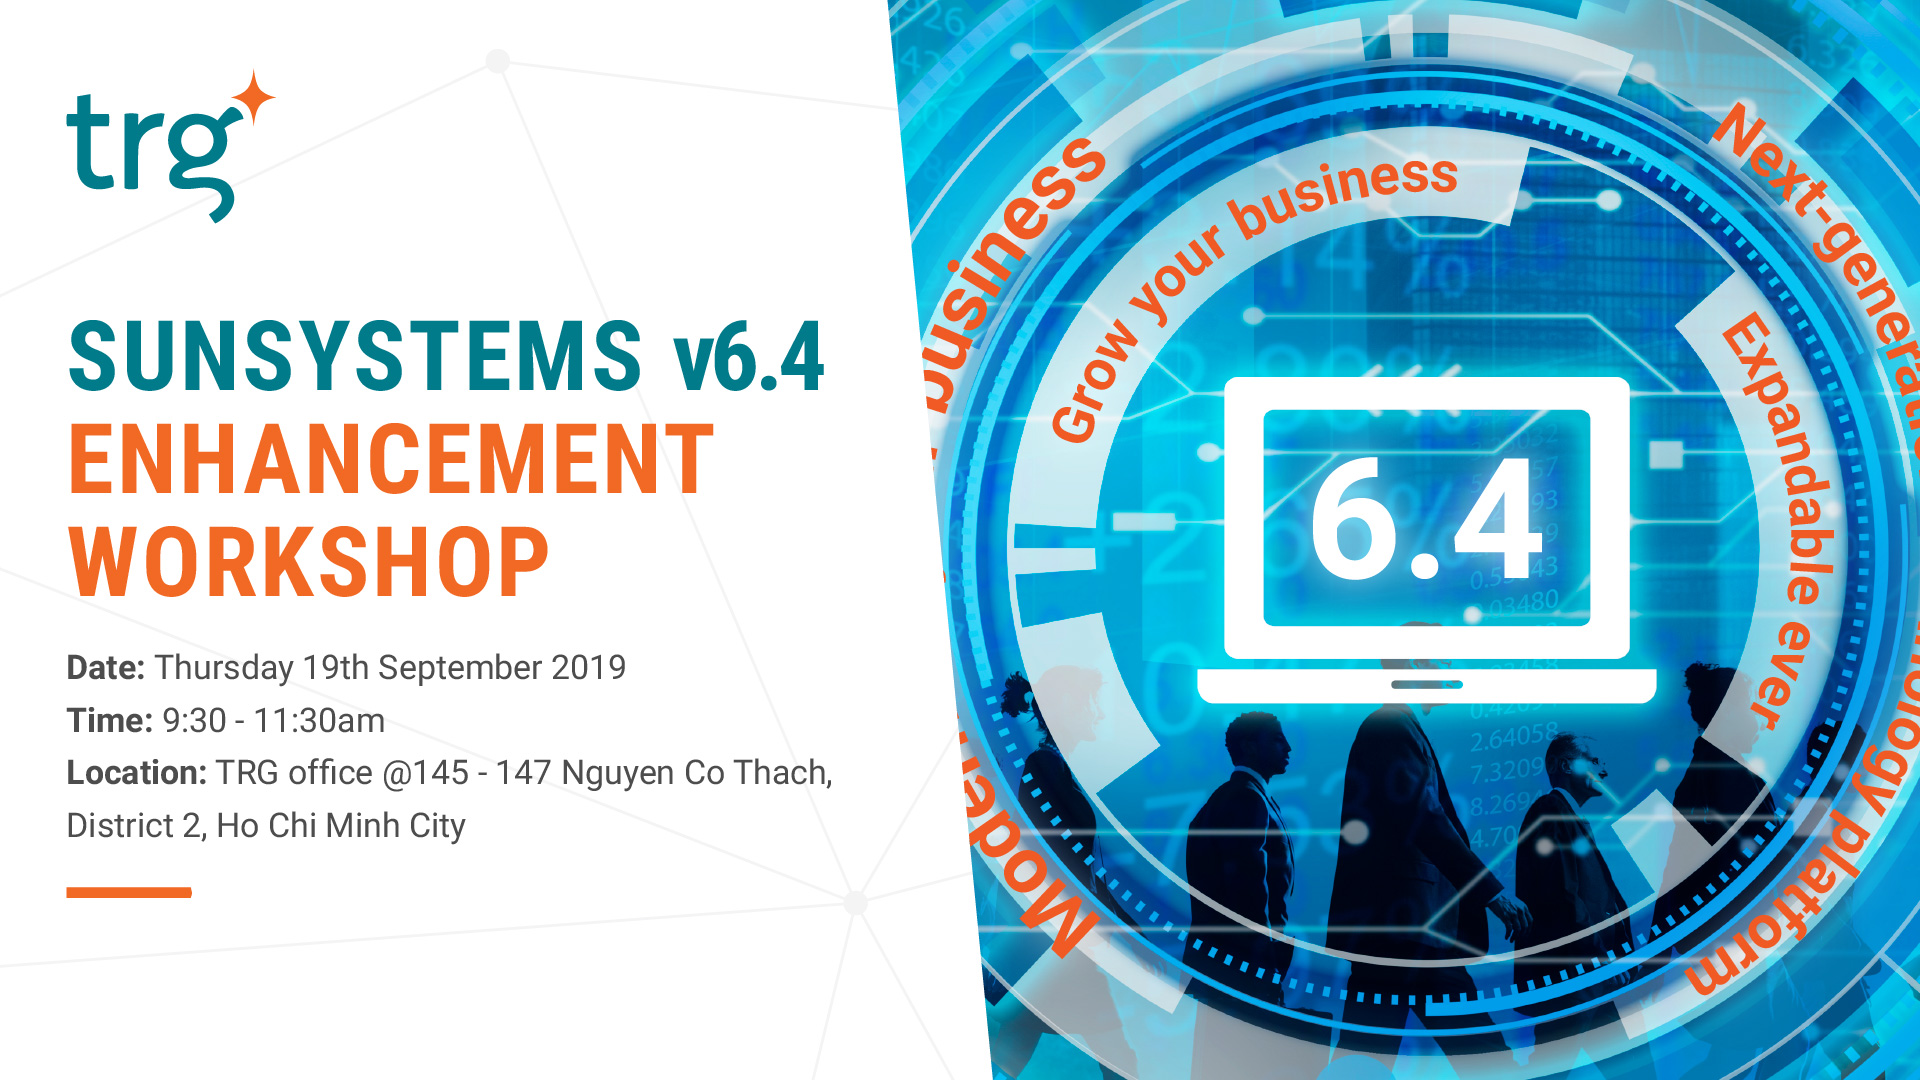 Infor SunSystems v6.4 introduction event at TRG